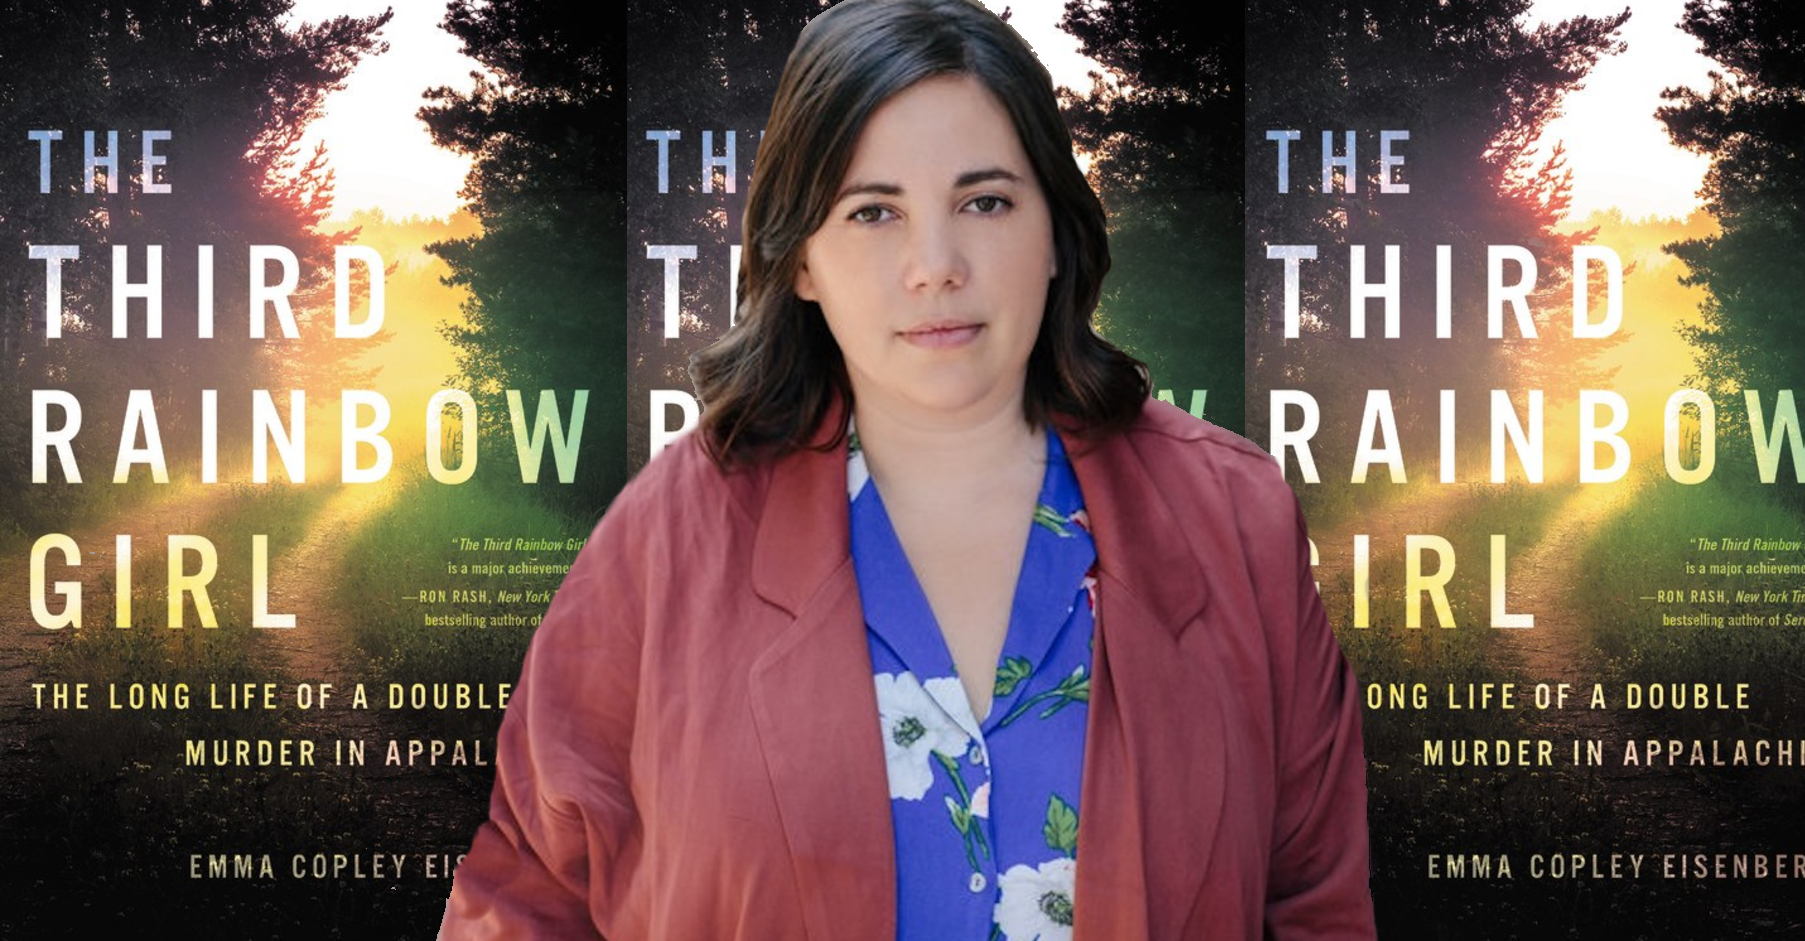 The Third Rainbow Girl The Long Life Of A Double Murder In Appalachia